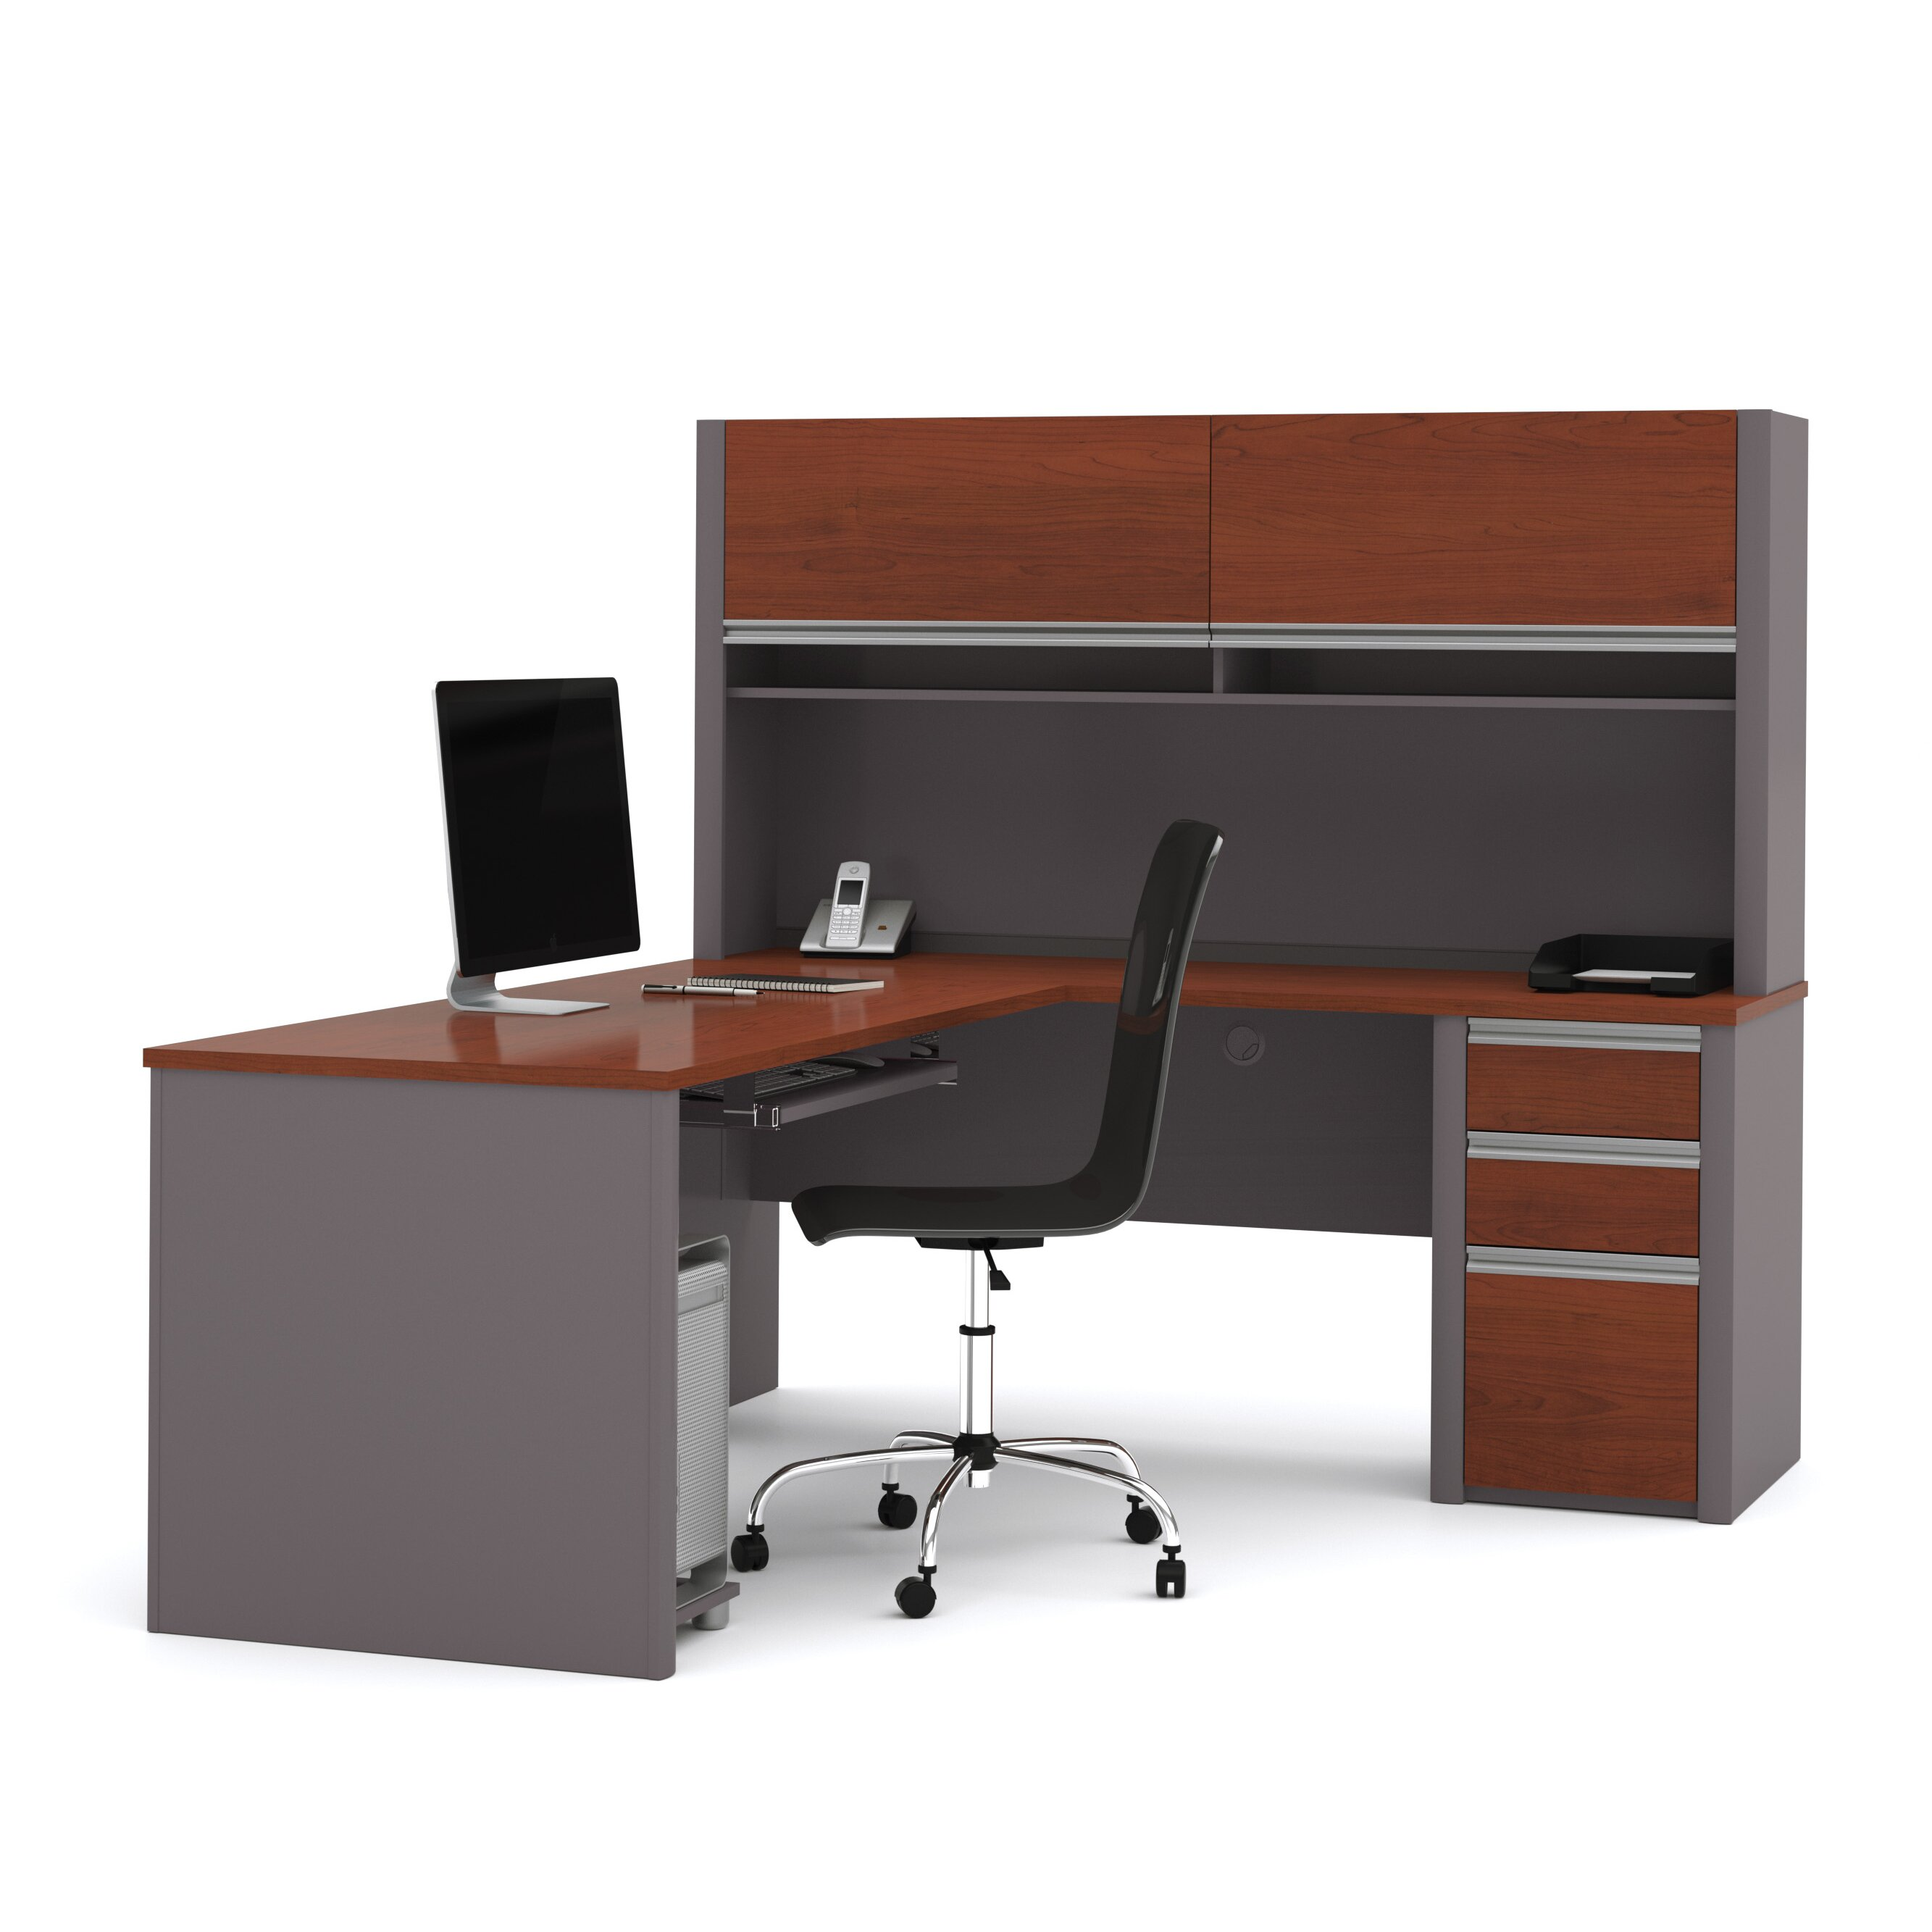 Office max desk with hutch babybluebug s bbb office max deluxe corner desk with hutch office - Office max office desk ...